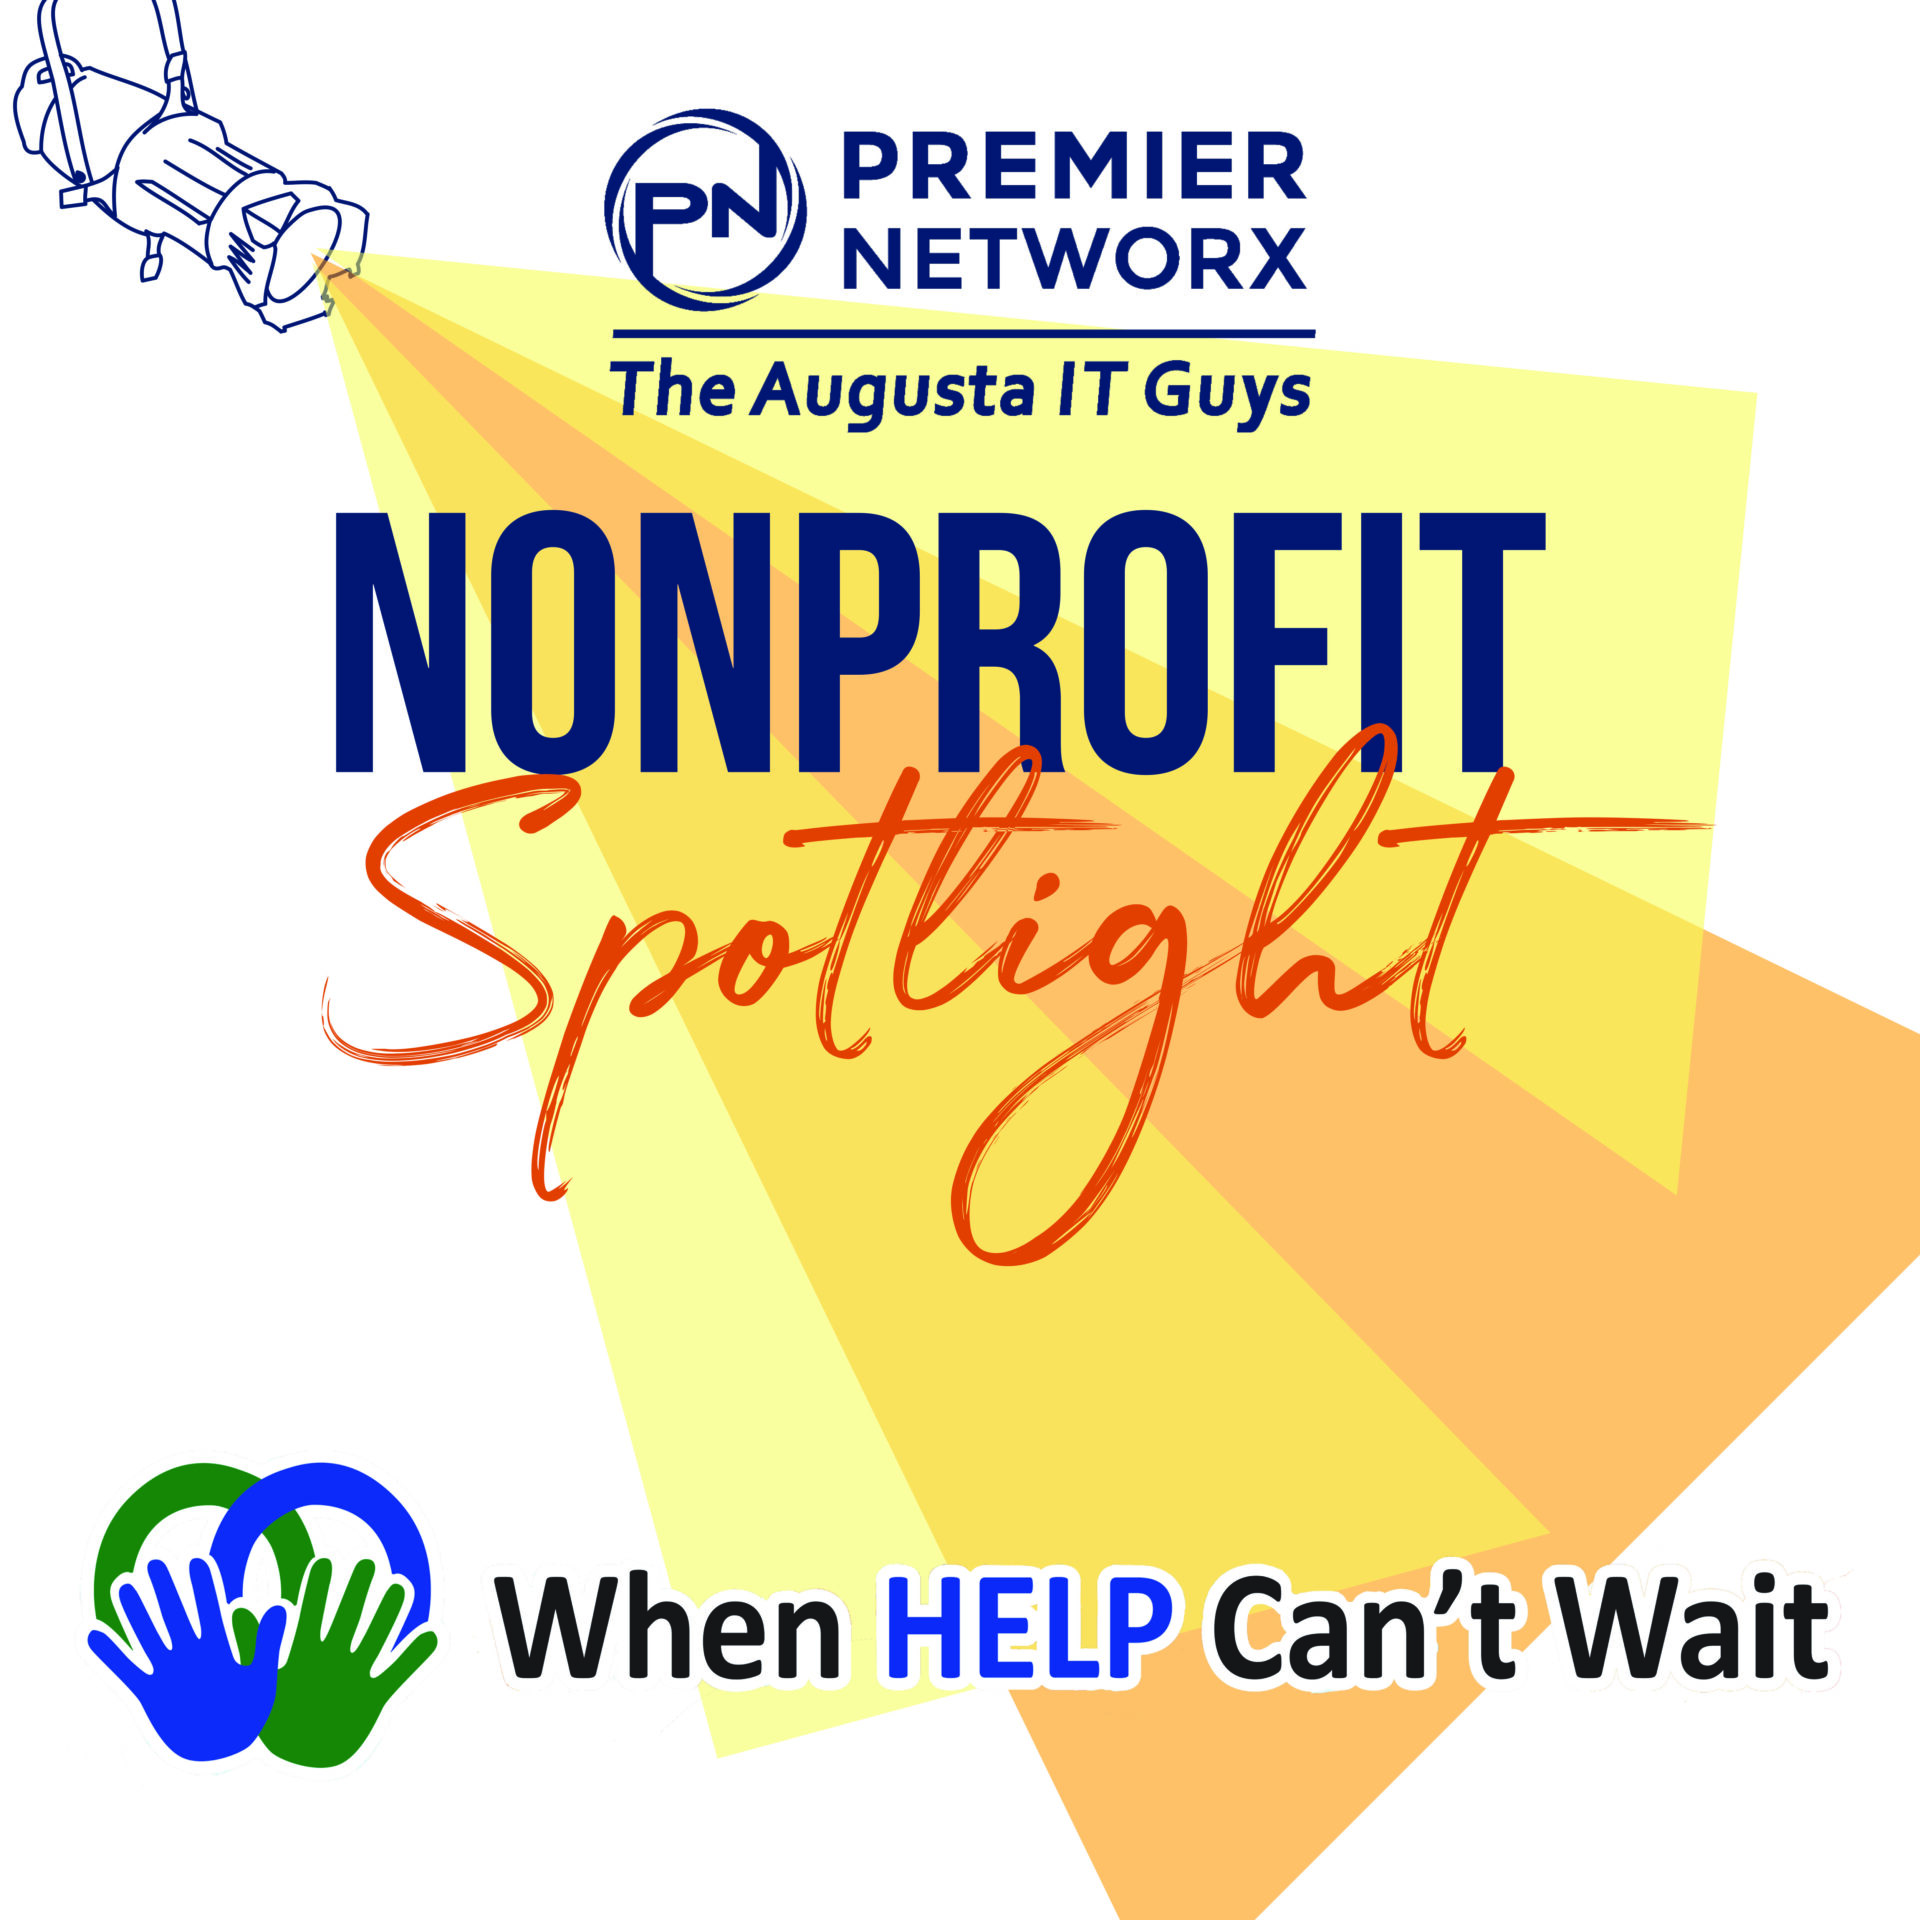 Premier Networx The Augusta IT Guys When Help Can't Wait Nonprofit